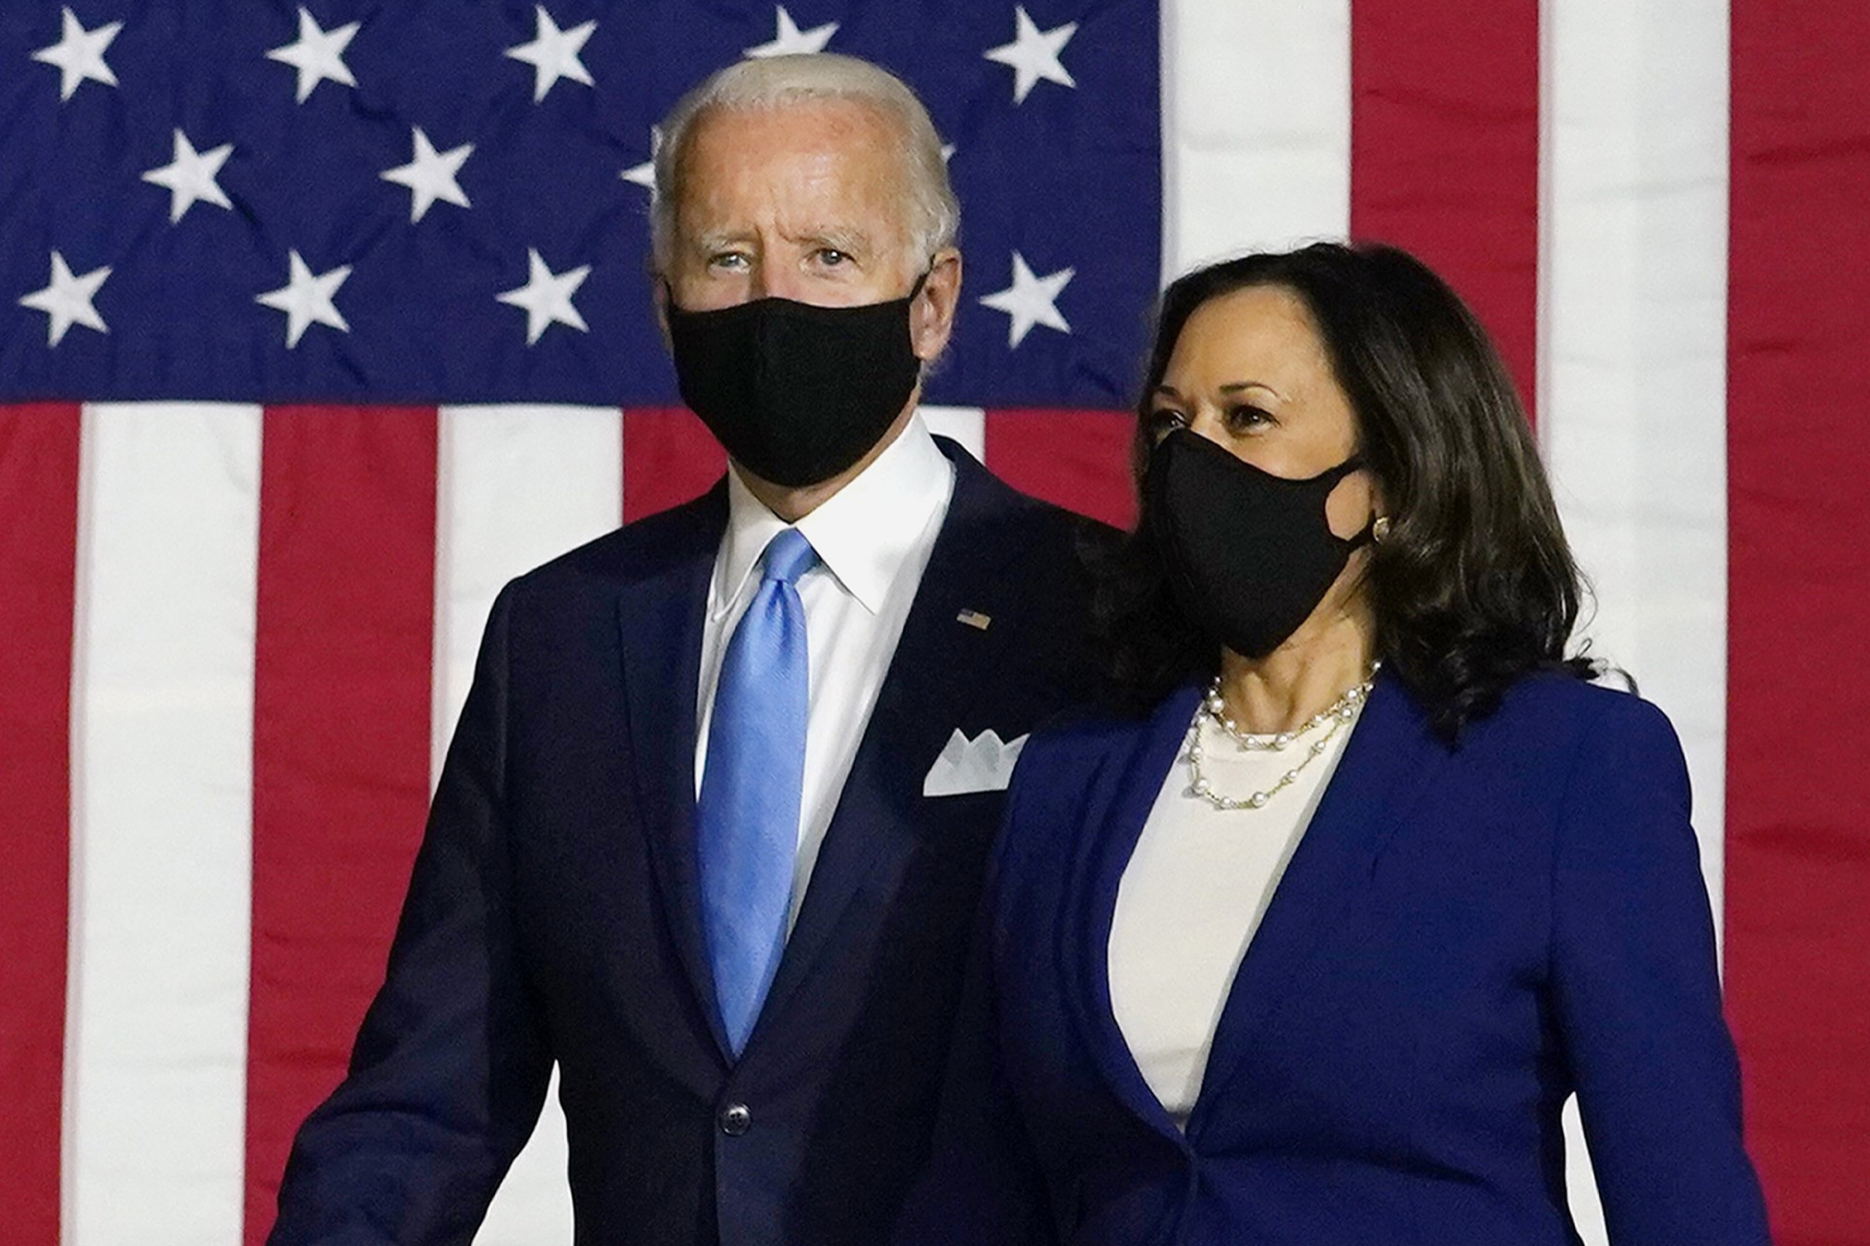 Joe Biden and Kamala Harris arrive at a news conference in Wilmington, Del., on Aug. 12, 2020.Carolyn Kaster / AP file